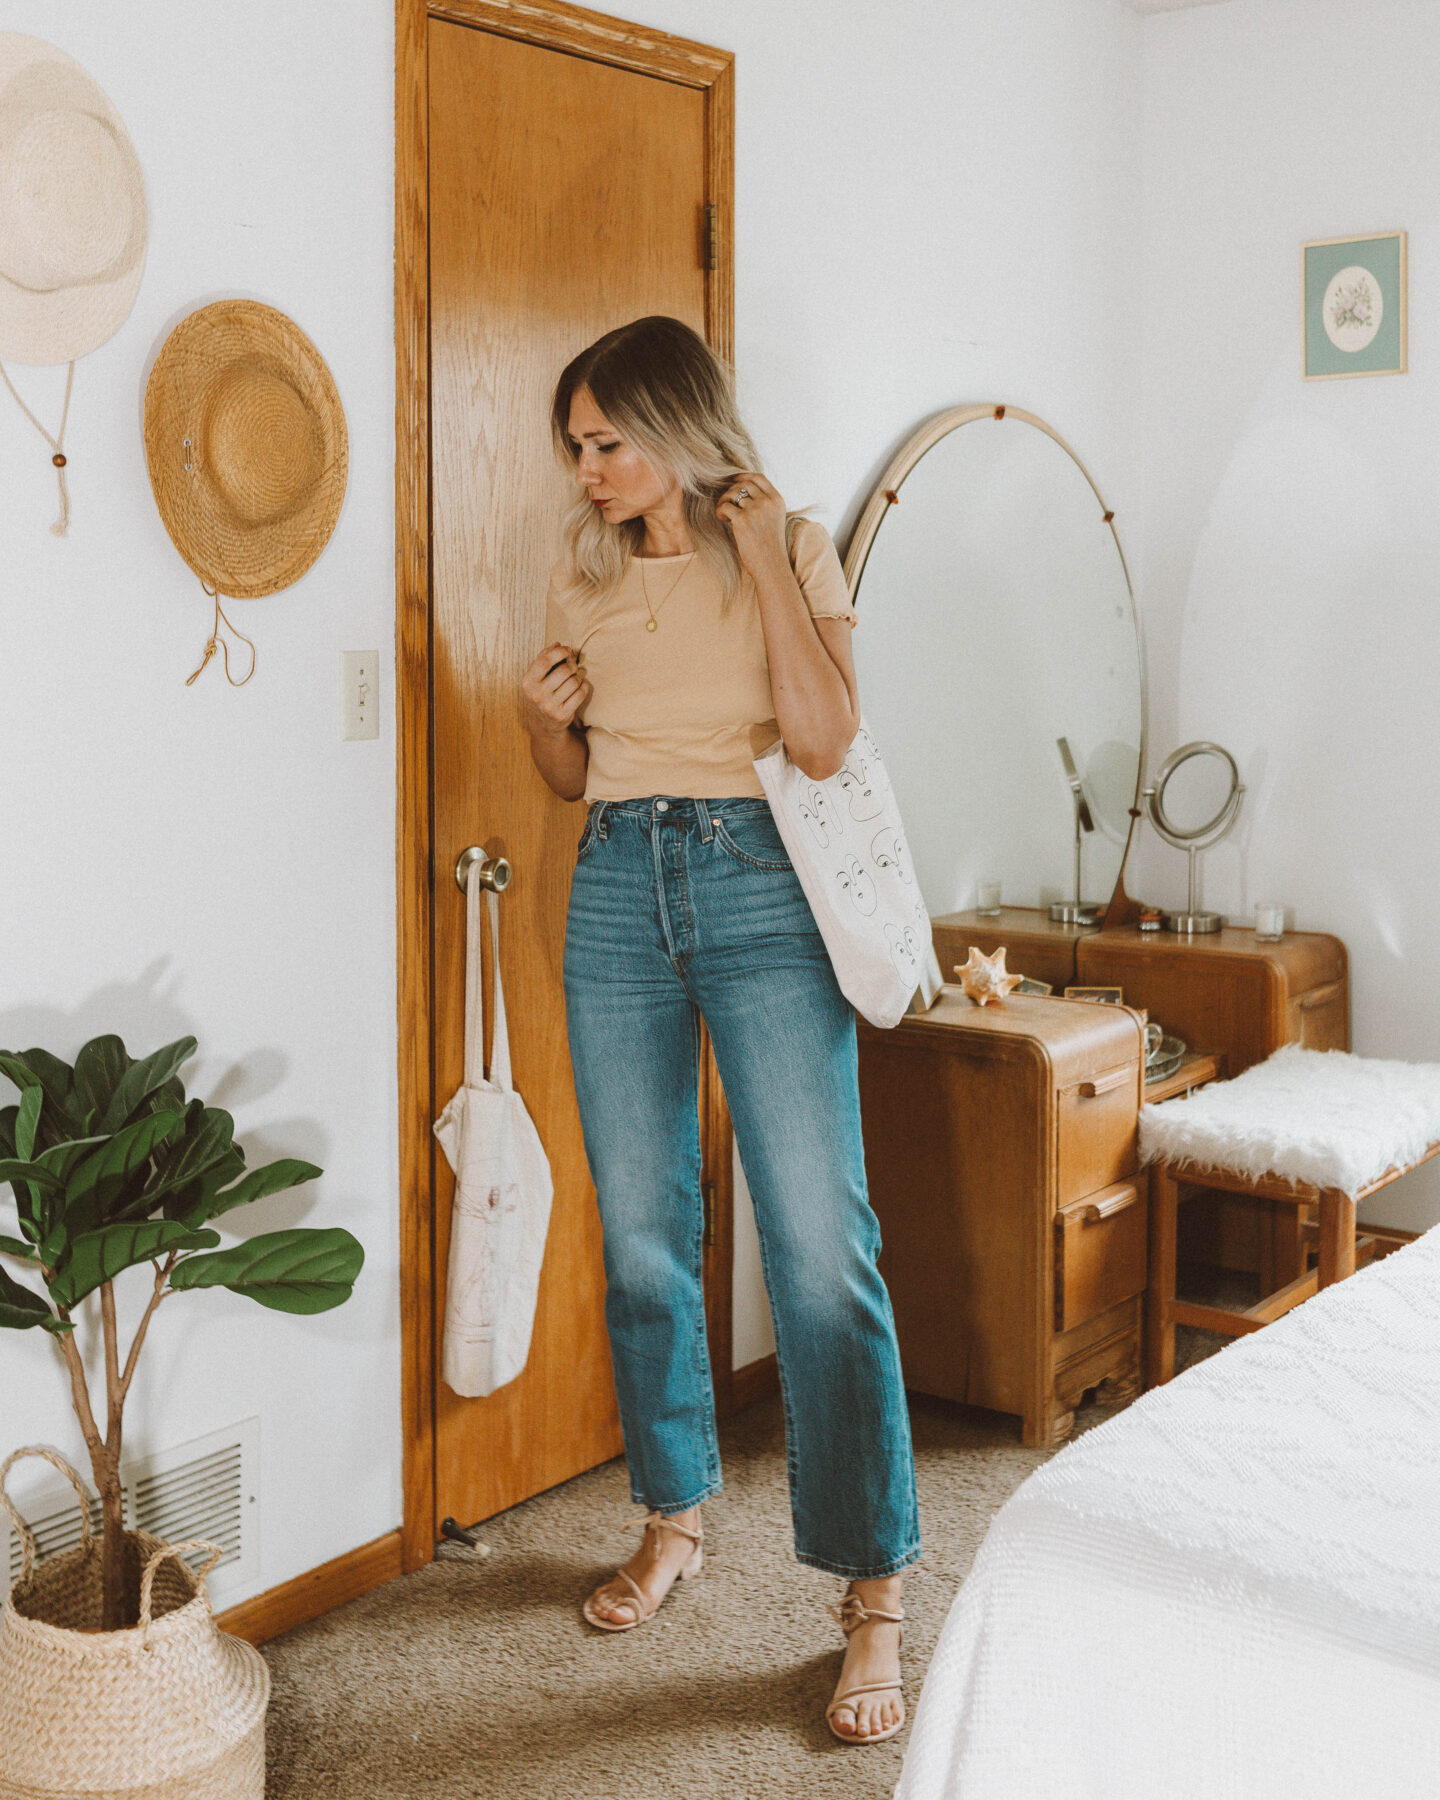 A Week of Summer Outfit Ideas, levis ribcage straight leg jeans review, back beat co. peach baby doll tee, loq sandals